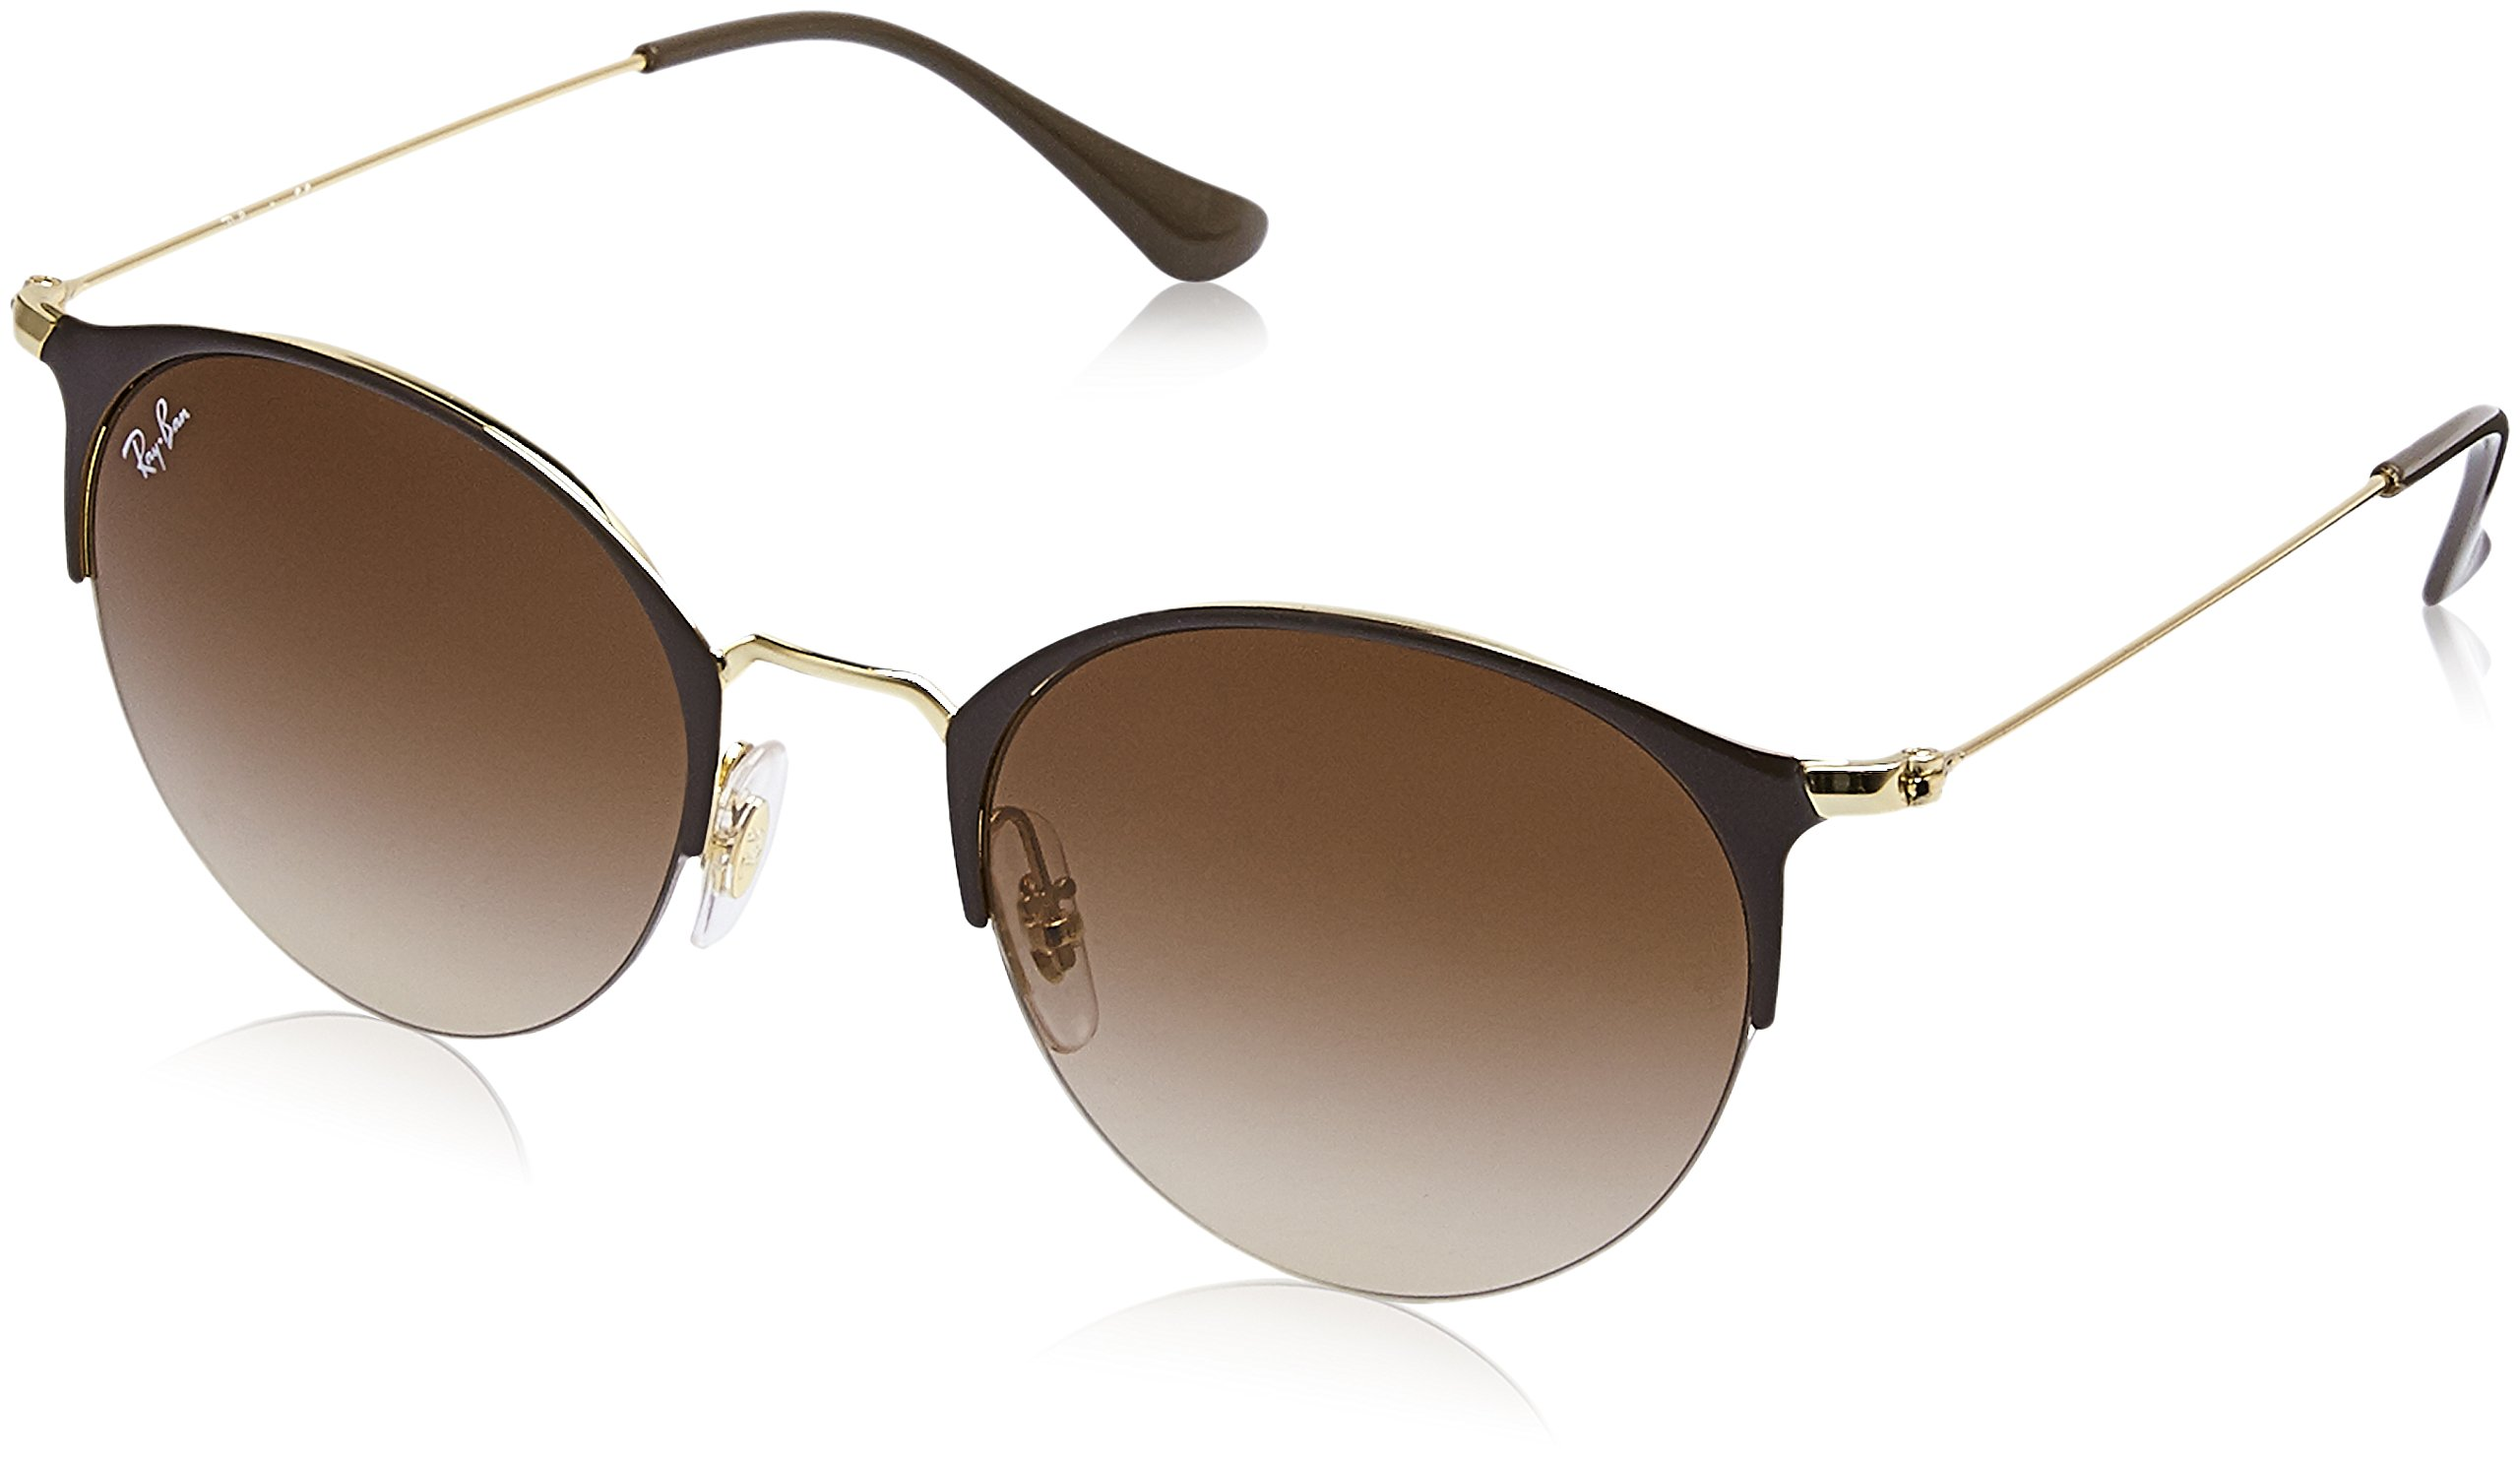 Ray-Ban Metal Unisex Round Sunglasses, Gold Top Brown, 50 mm